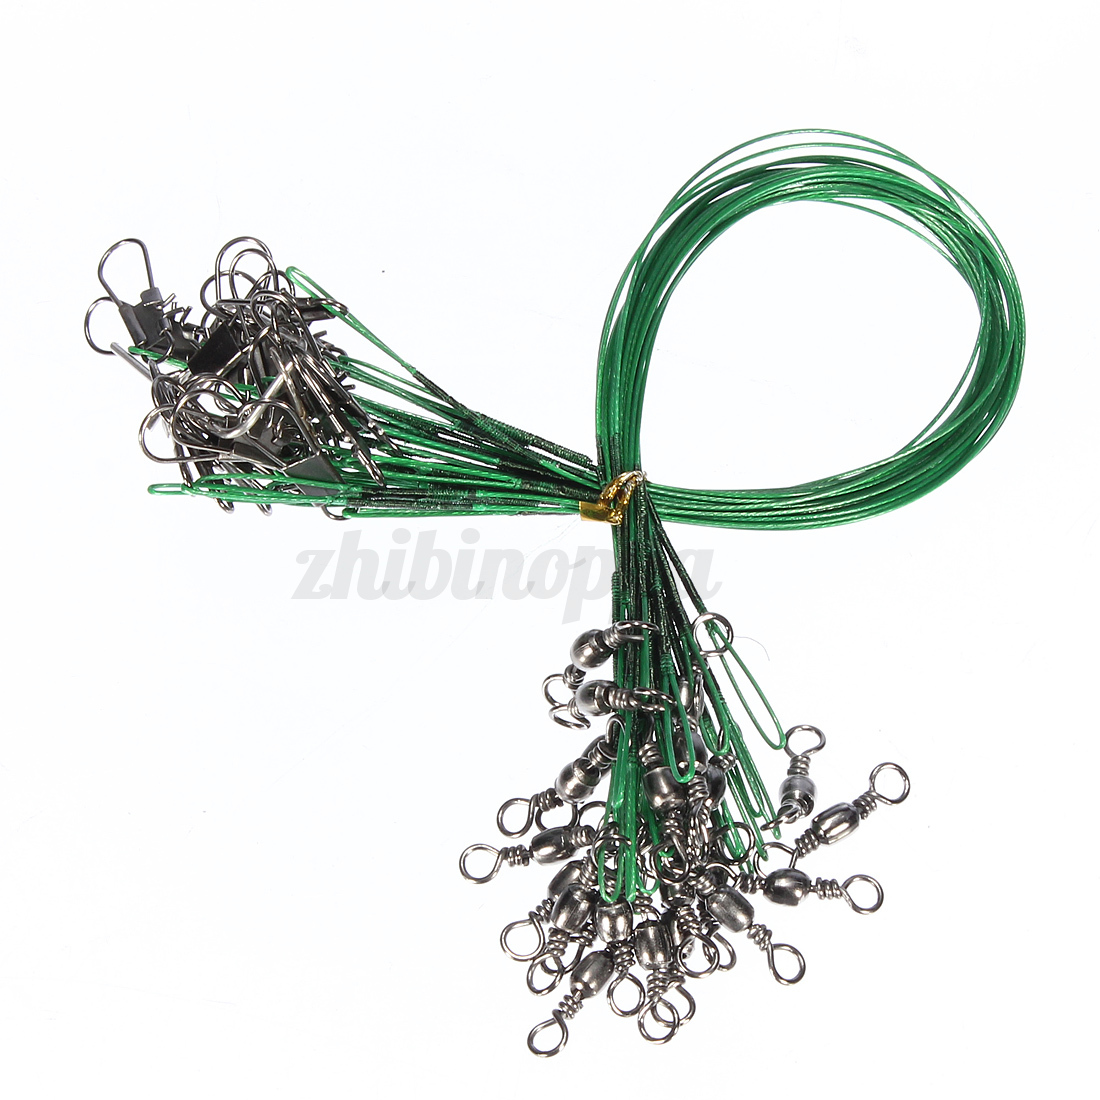 72x-Fishing-Lures-Leader-Stainless-Wire-Trace-Set-Spinning-Pike-Line-16-23-31cm thumbnail 8